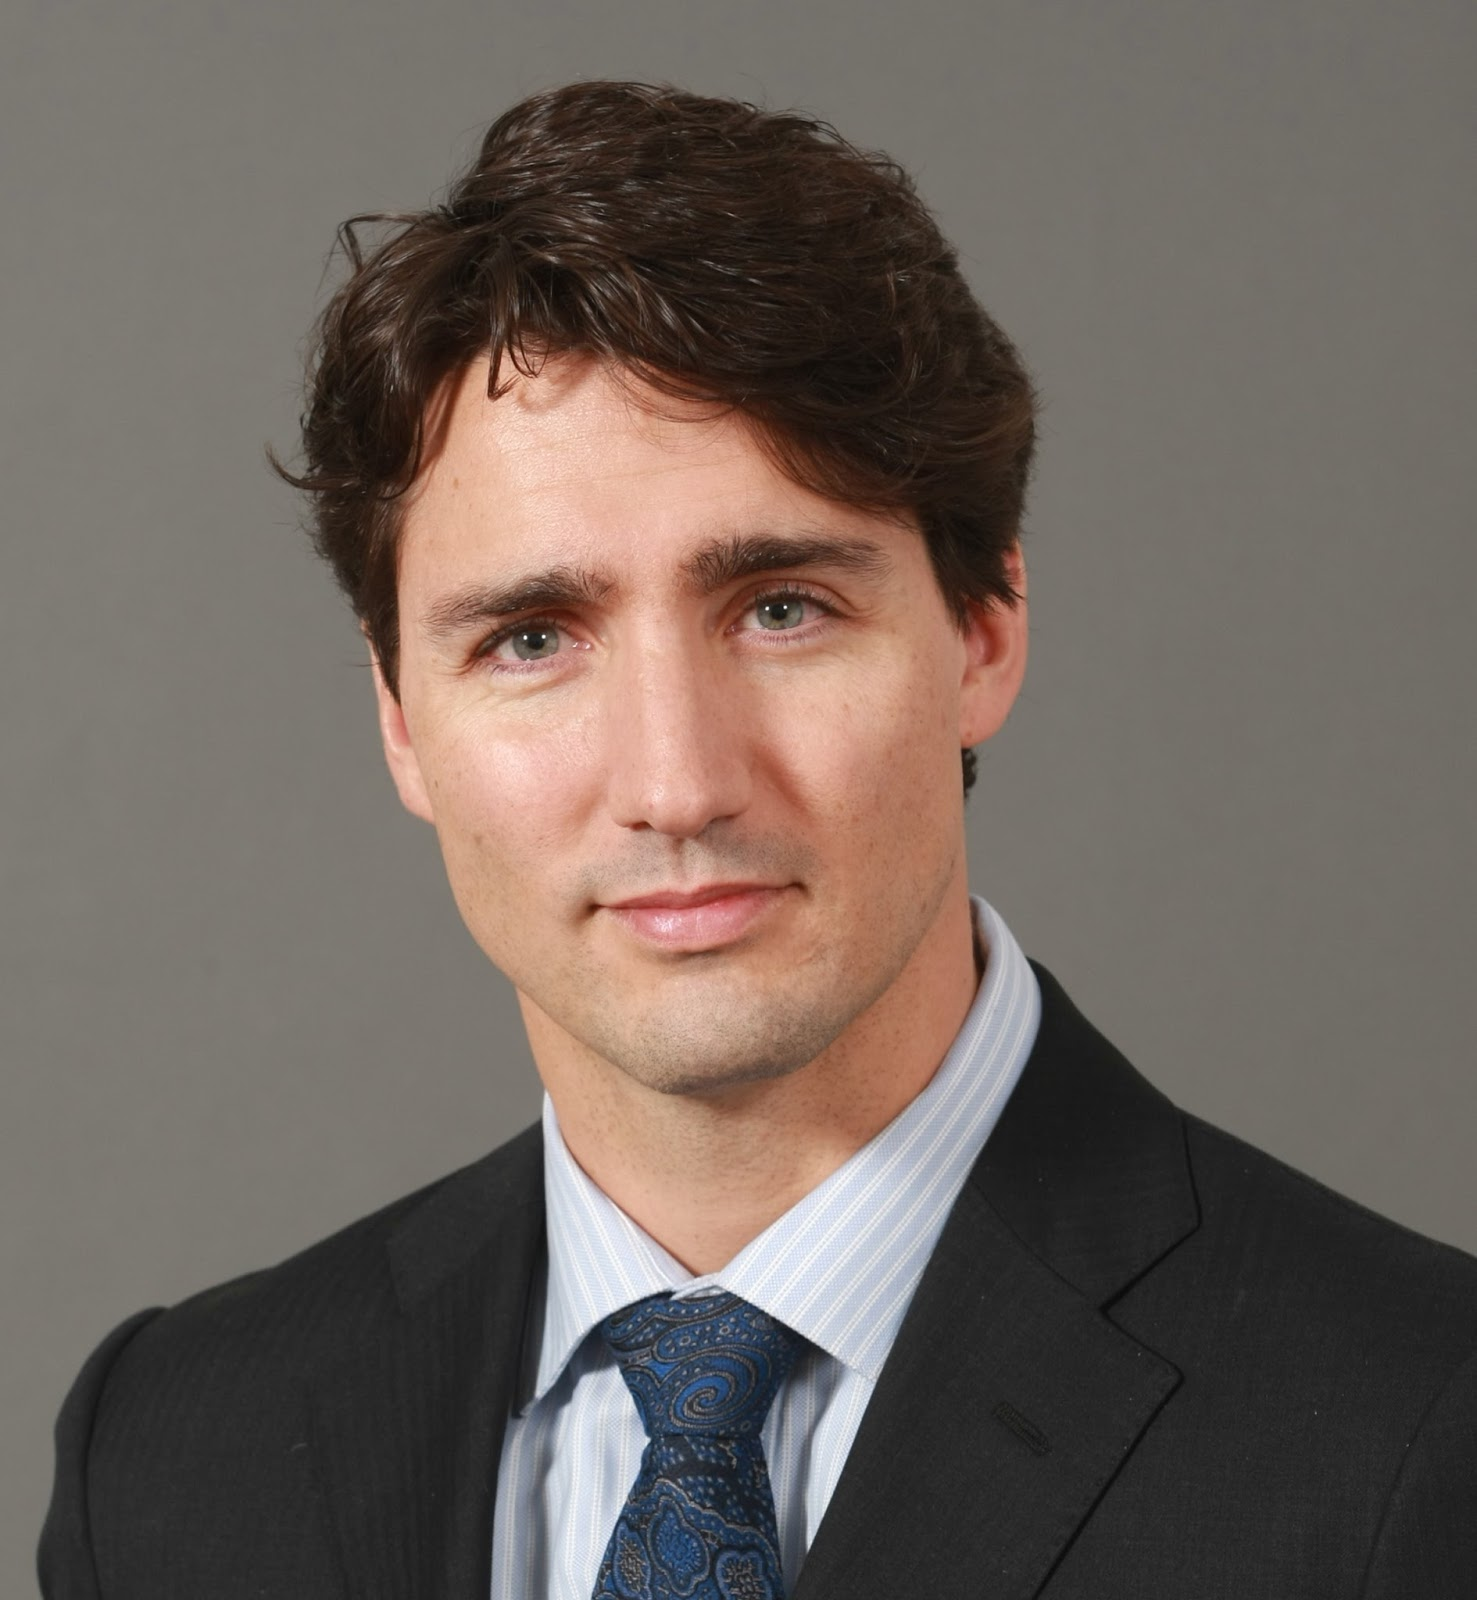 justin trudeau - photo #3